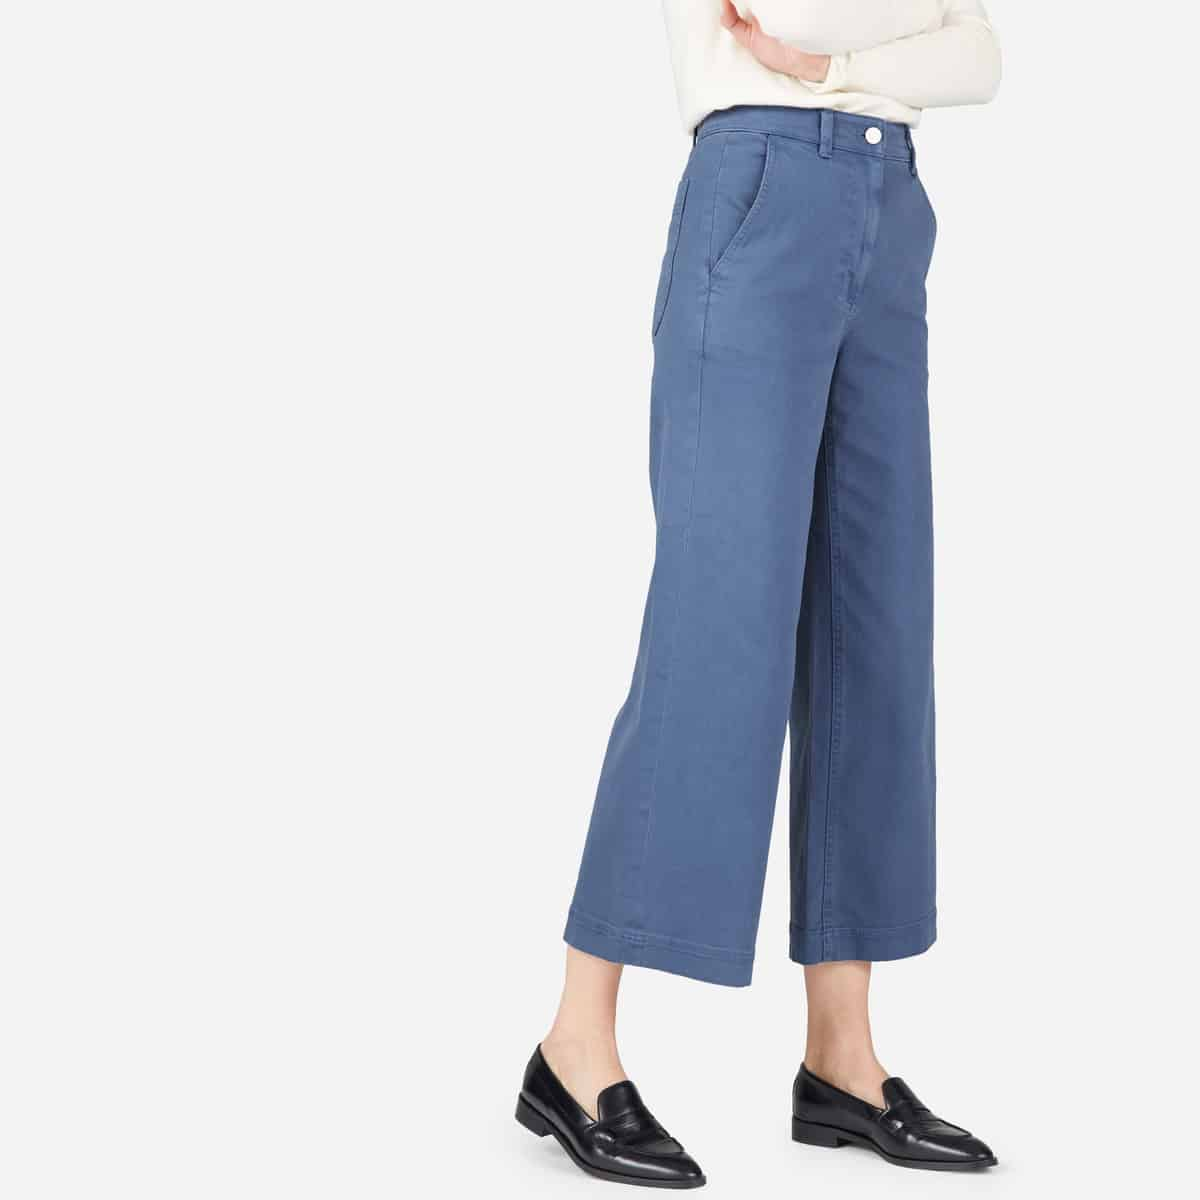 culottes - soft blue crop pants from Everlane